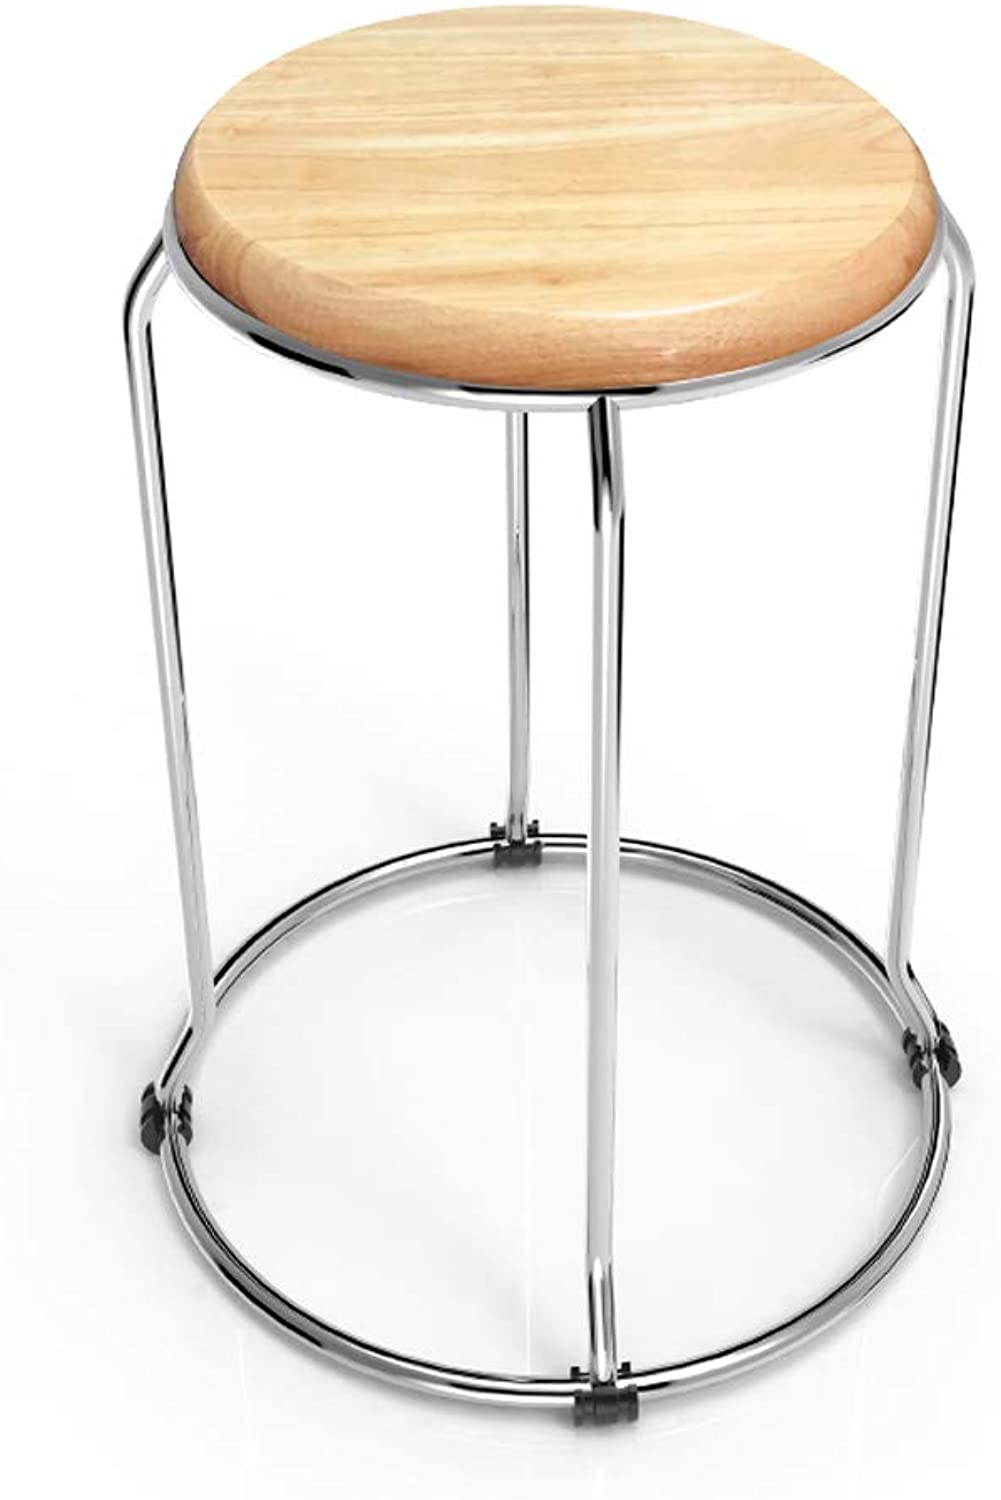 SYFO Household Wood Stool, Stainless Steel Stool, Simple Dining Table Stool, Fashion shoes Chair Stool